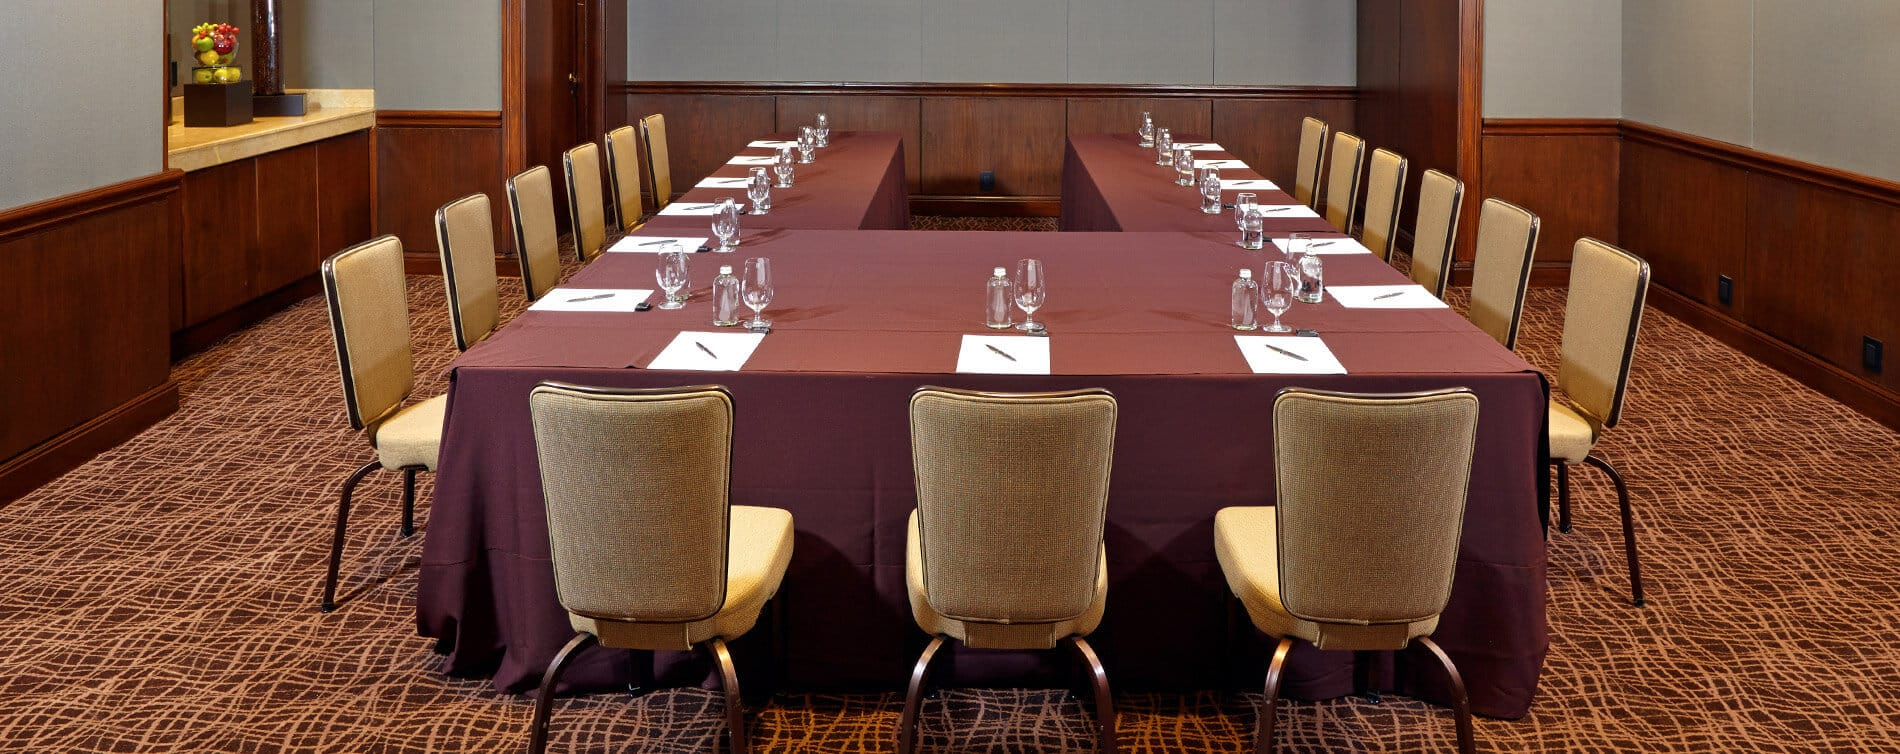 Meeting at InterContinental Presidente Mexico City, Polanco